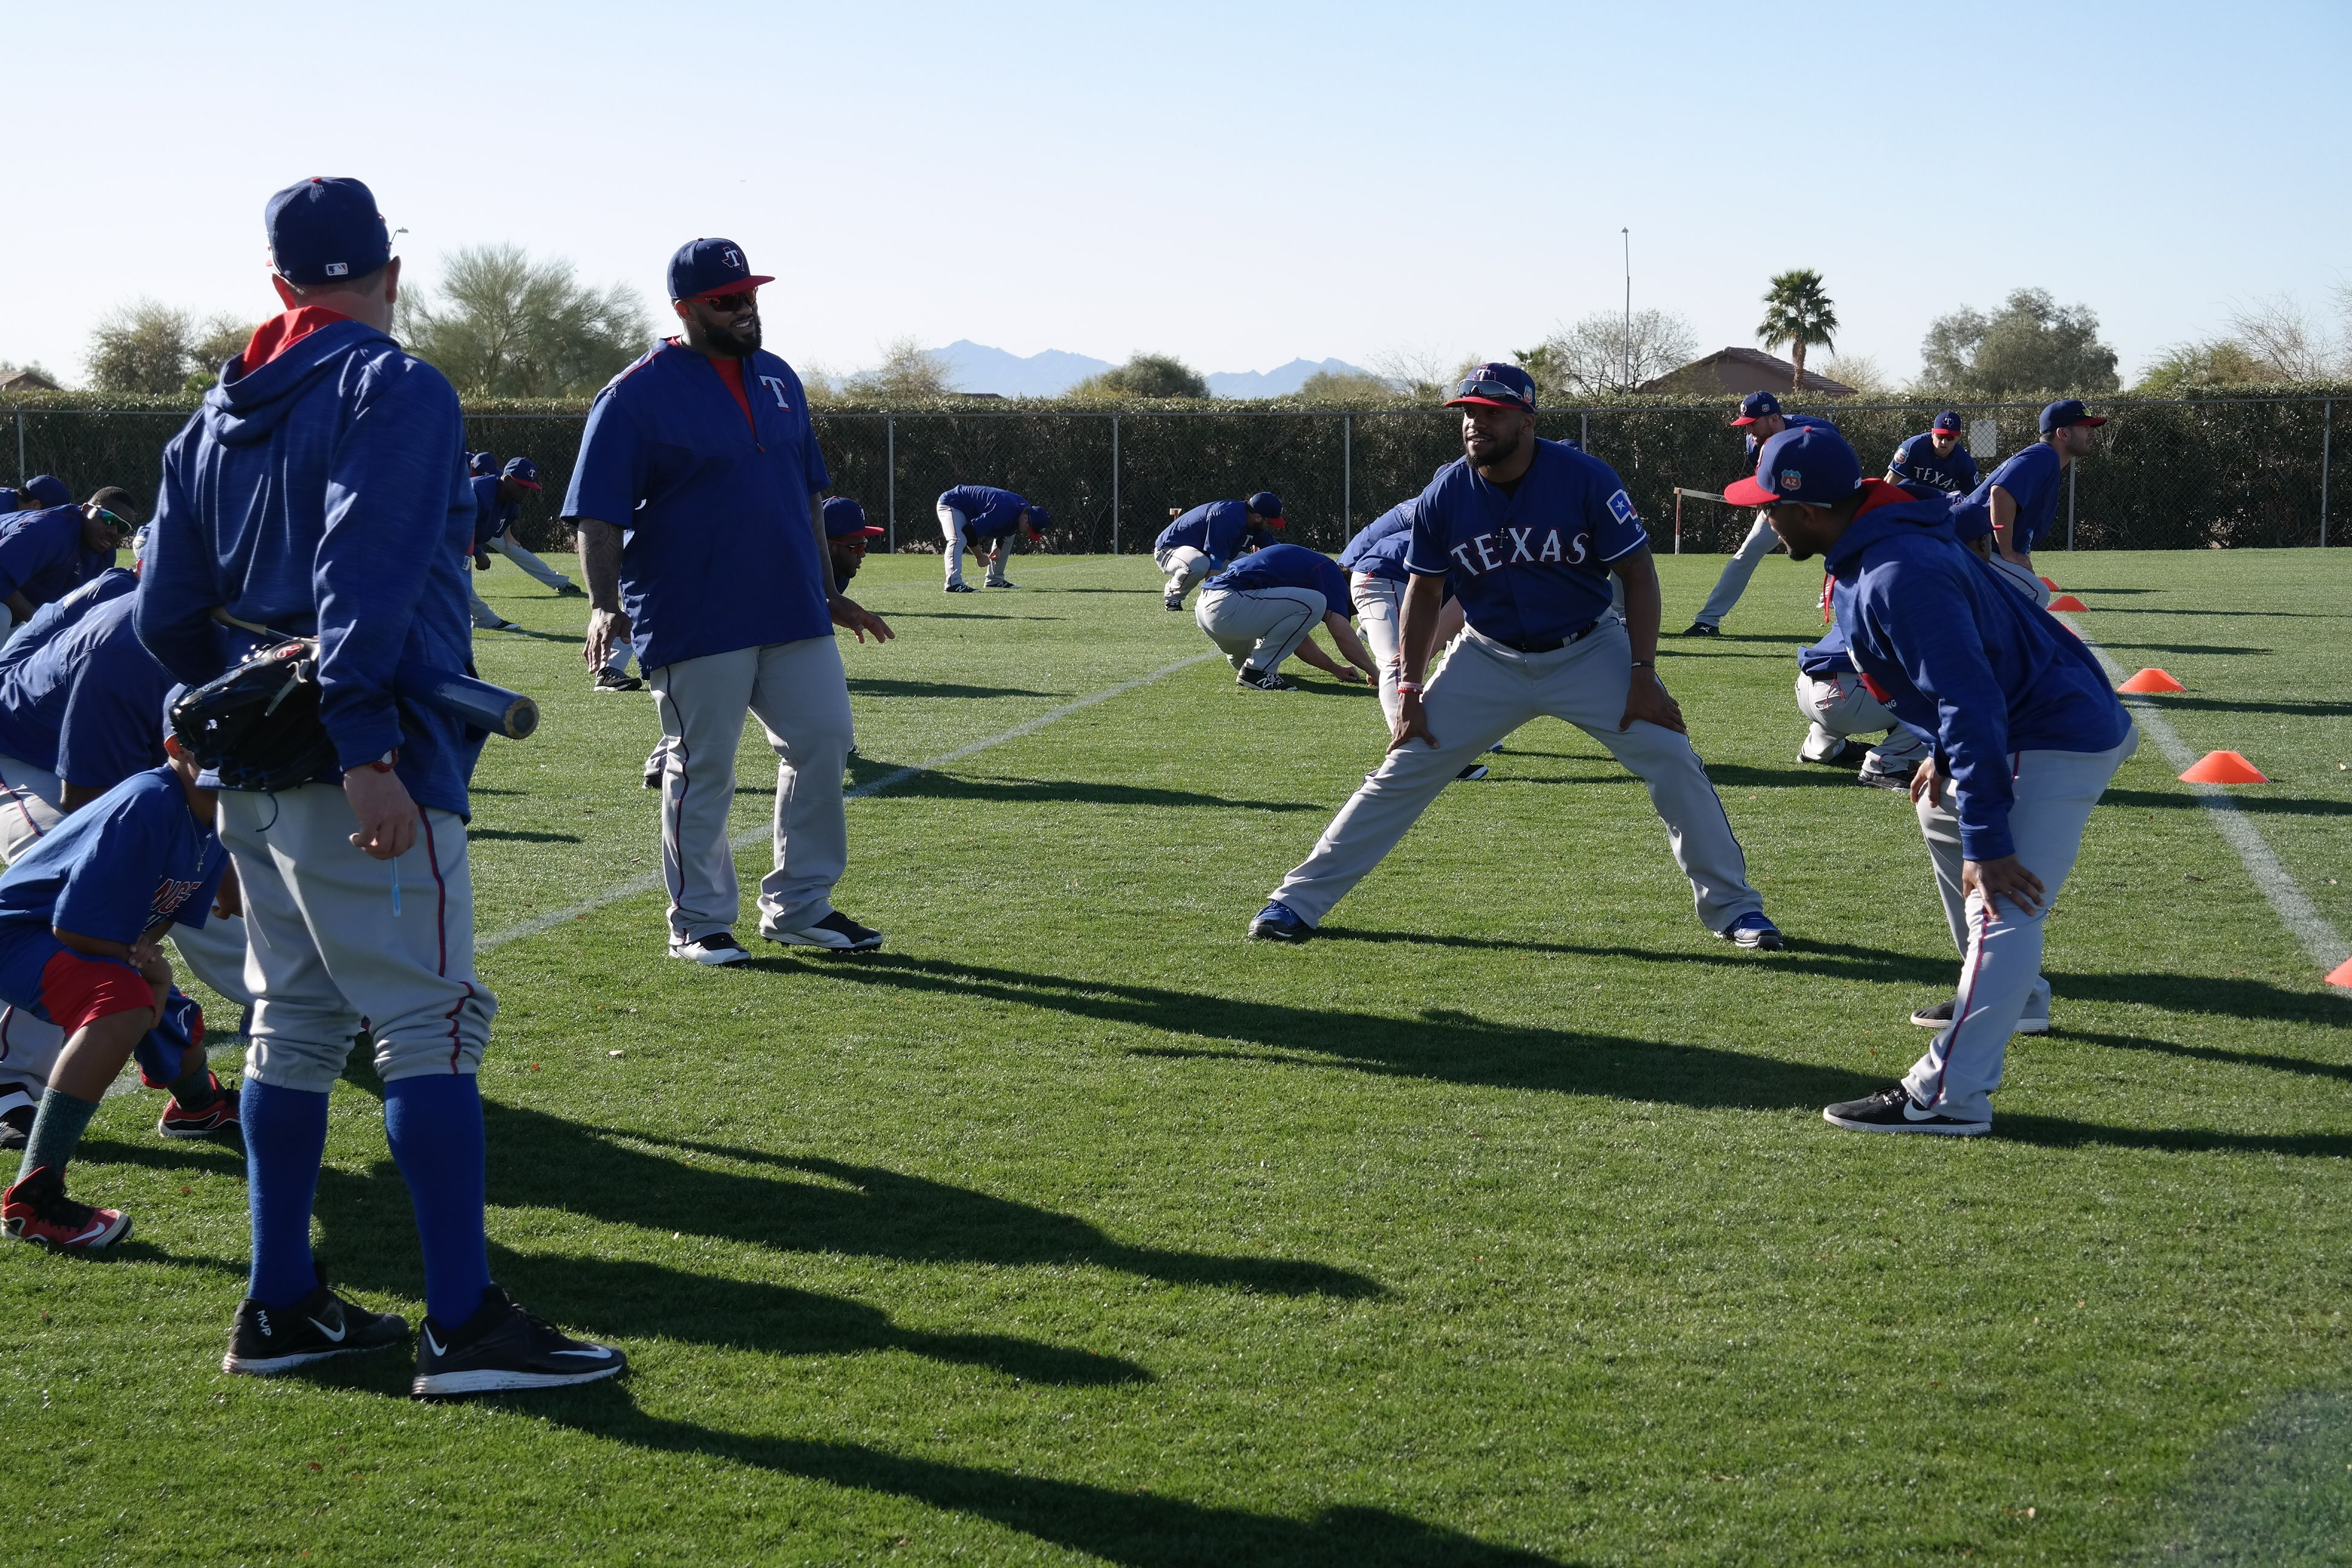 Prince, Adrian, Delino and Elvis chat during prepractice